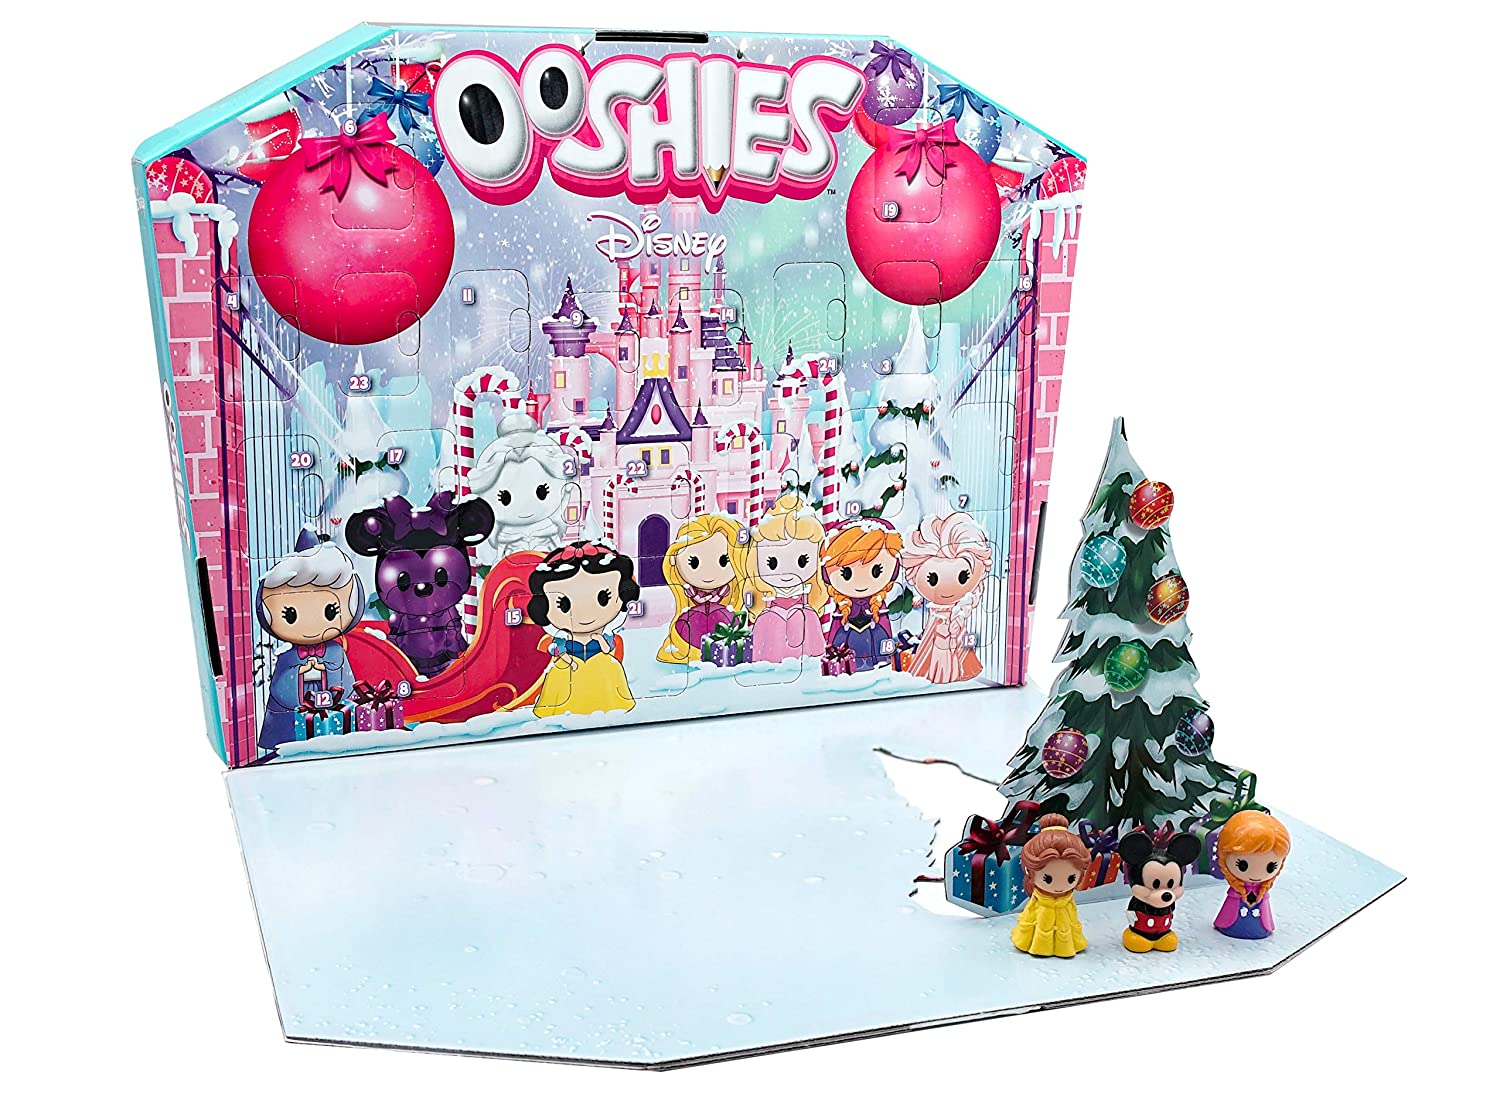 Ooshies 77172.0030 Disney Advent Calendar, Multicolour Headstart